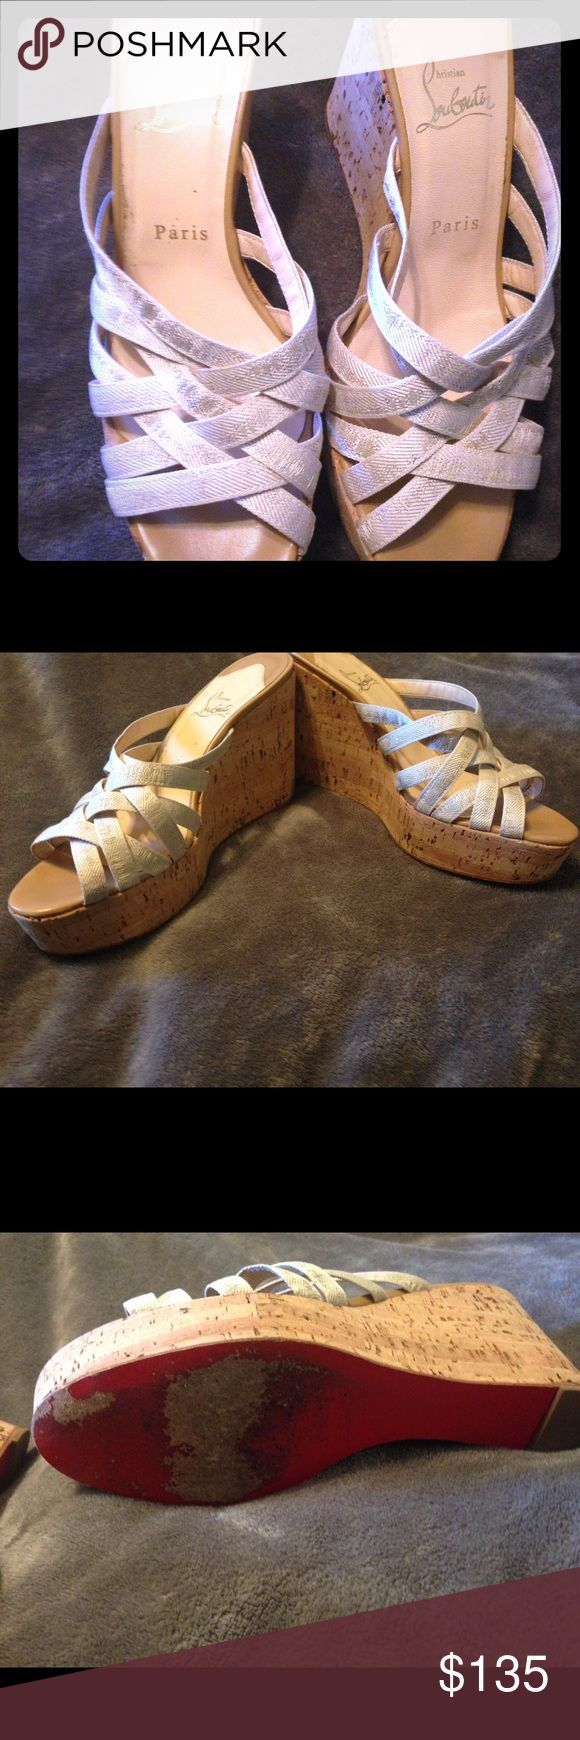 Christian Loubutin cork sandals Made in Spain,size 40,they are preloved ,beautiful shoes 👠 made with cork and the signature red sole that's made of wood ,as far as the sizing goes they run smaller Christian Louboutin Shoes Platforms